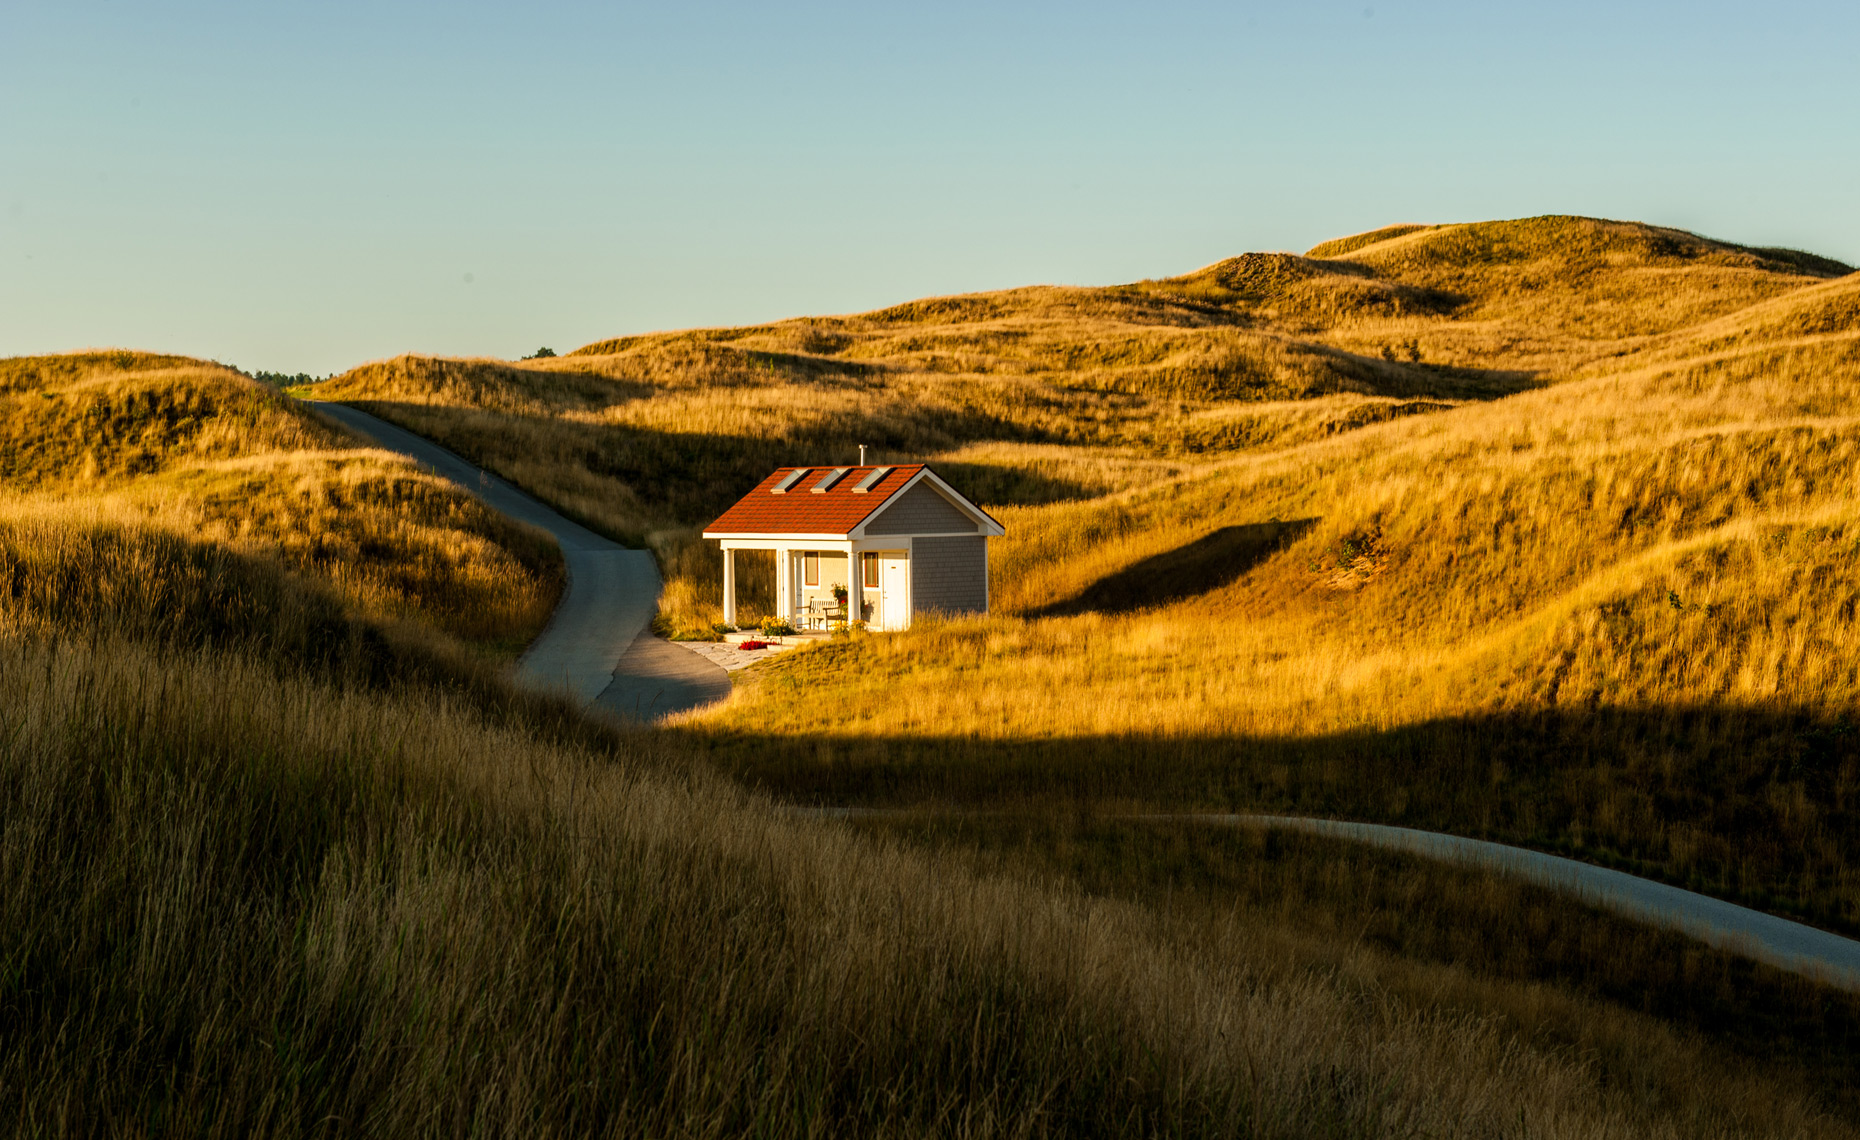 Neil-Colton-travel-photography-arcadia-bluffs-golf-club-141